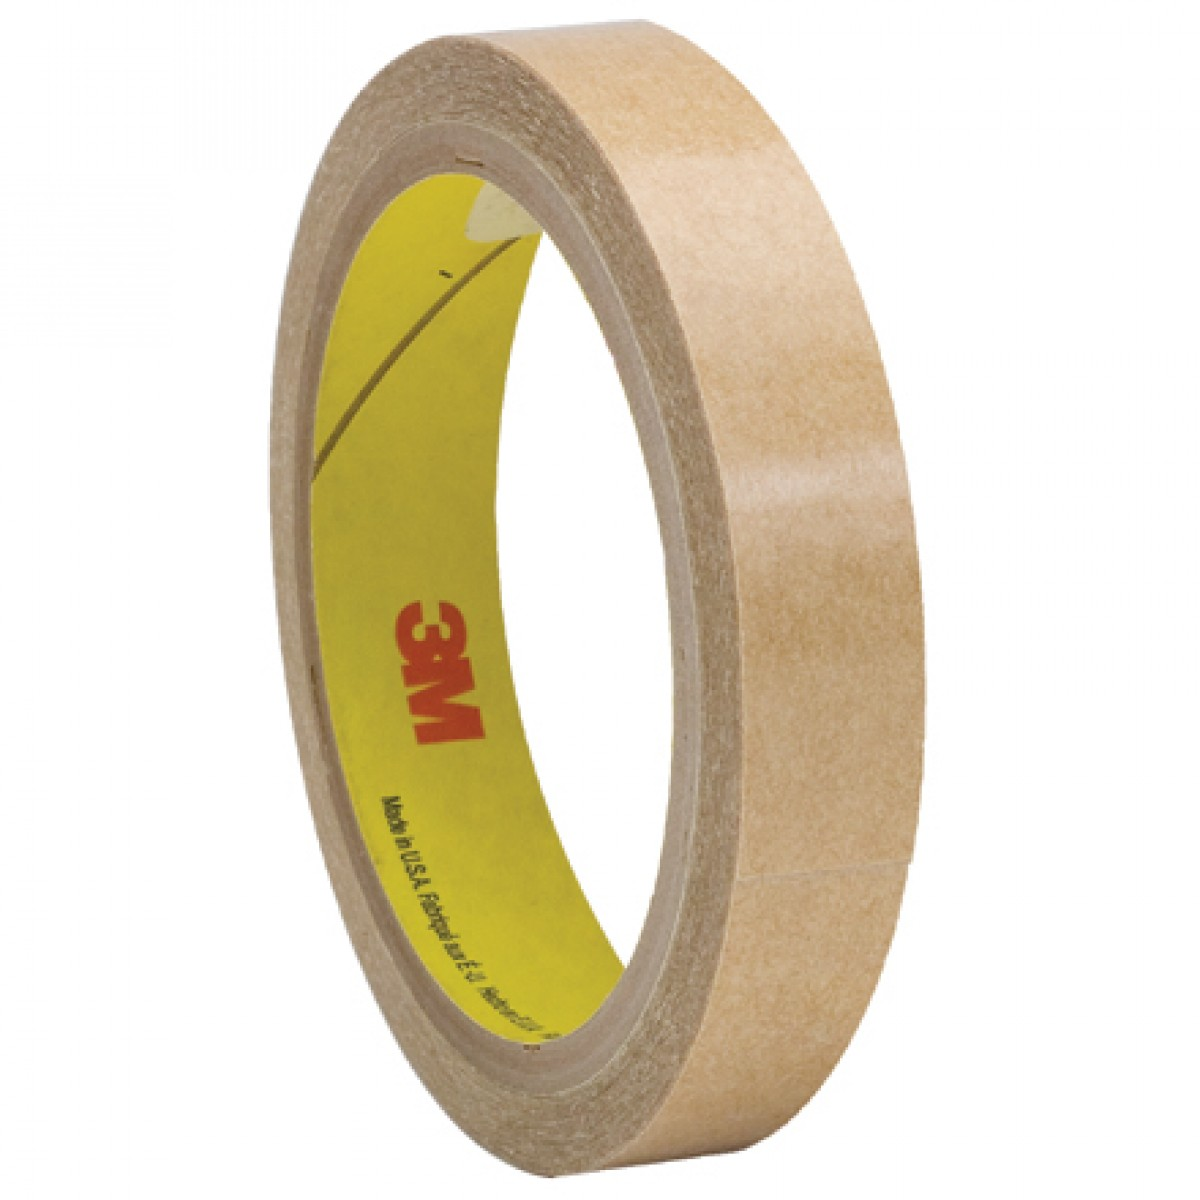 1 2 Quot X 60 Yds 3m 950 Adhesive Transfer Tape Hand Rolls